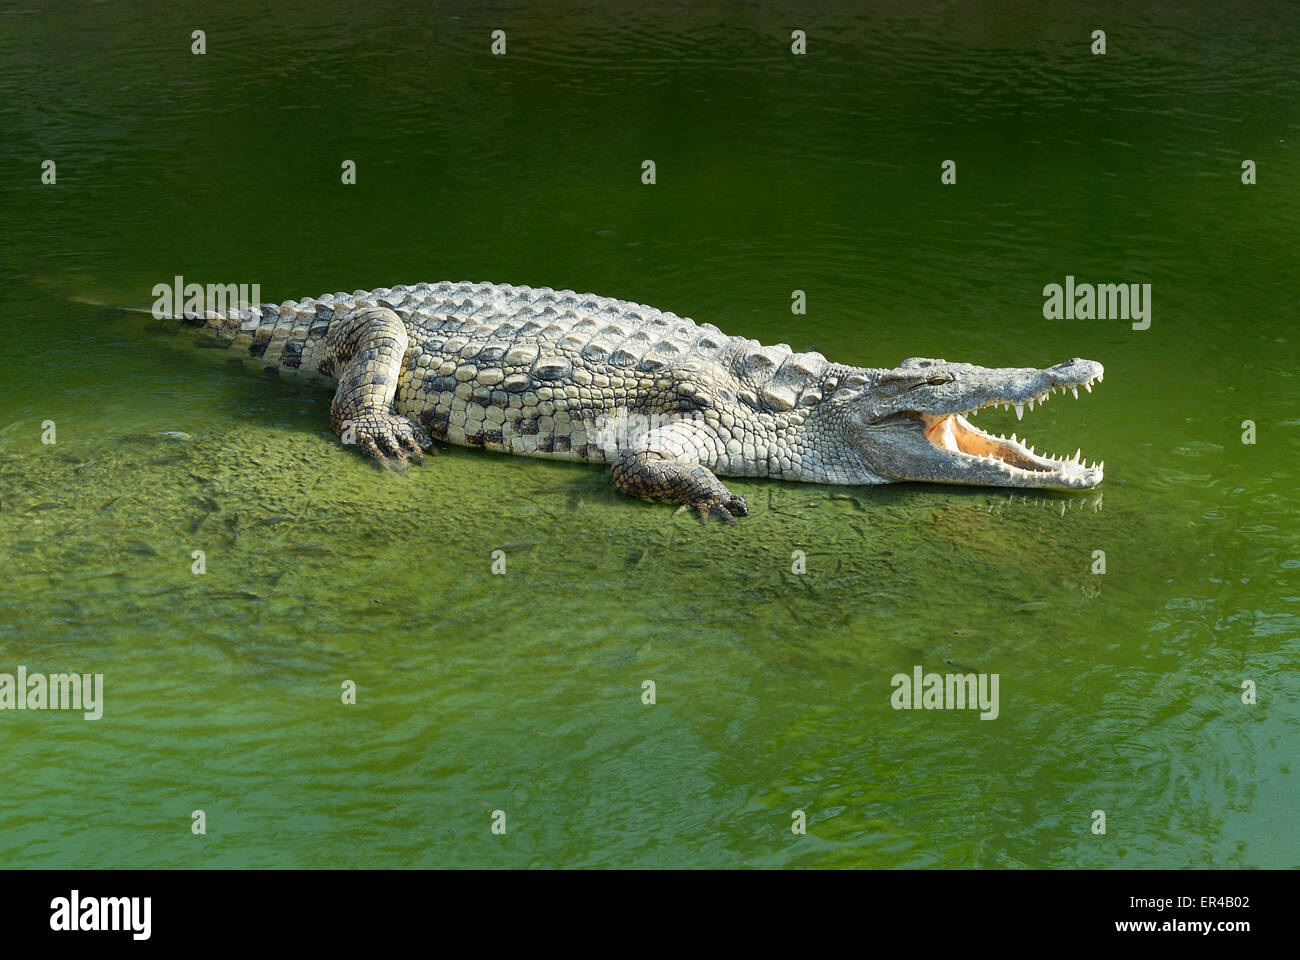 Alligator Mississipiensis wide open mouth - Stock Image